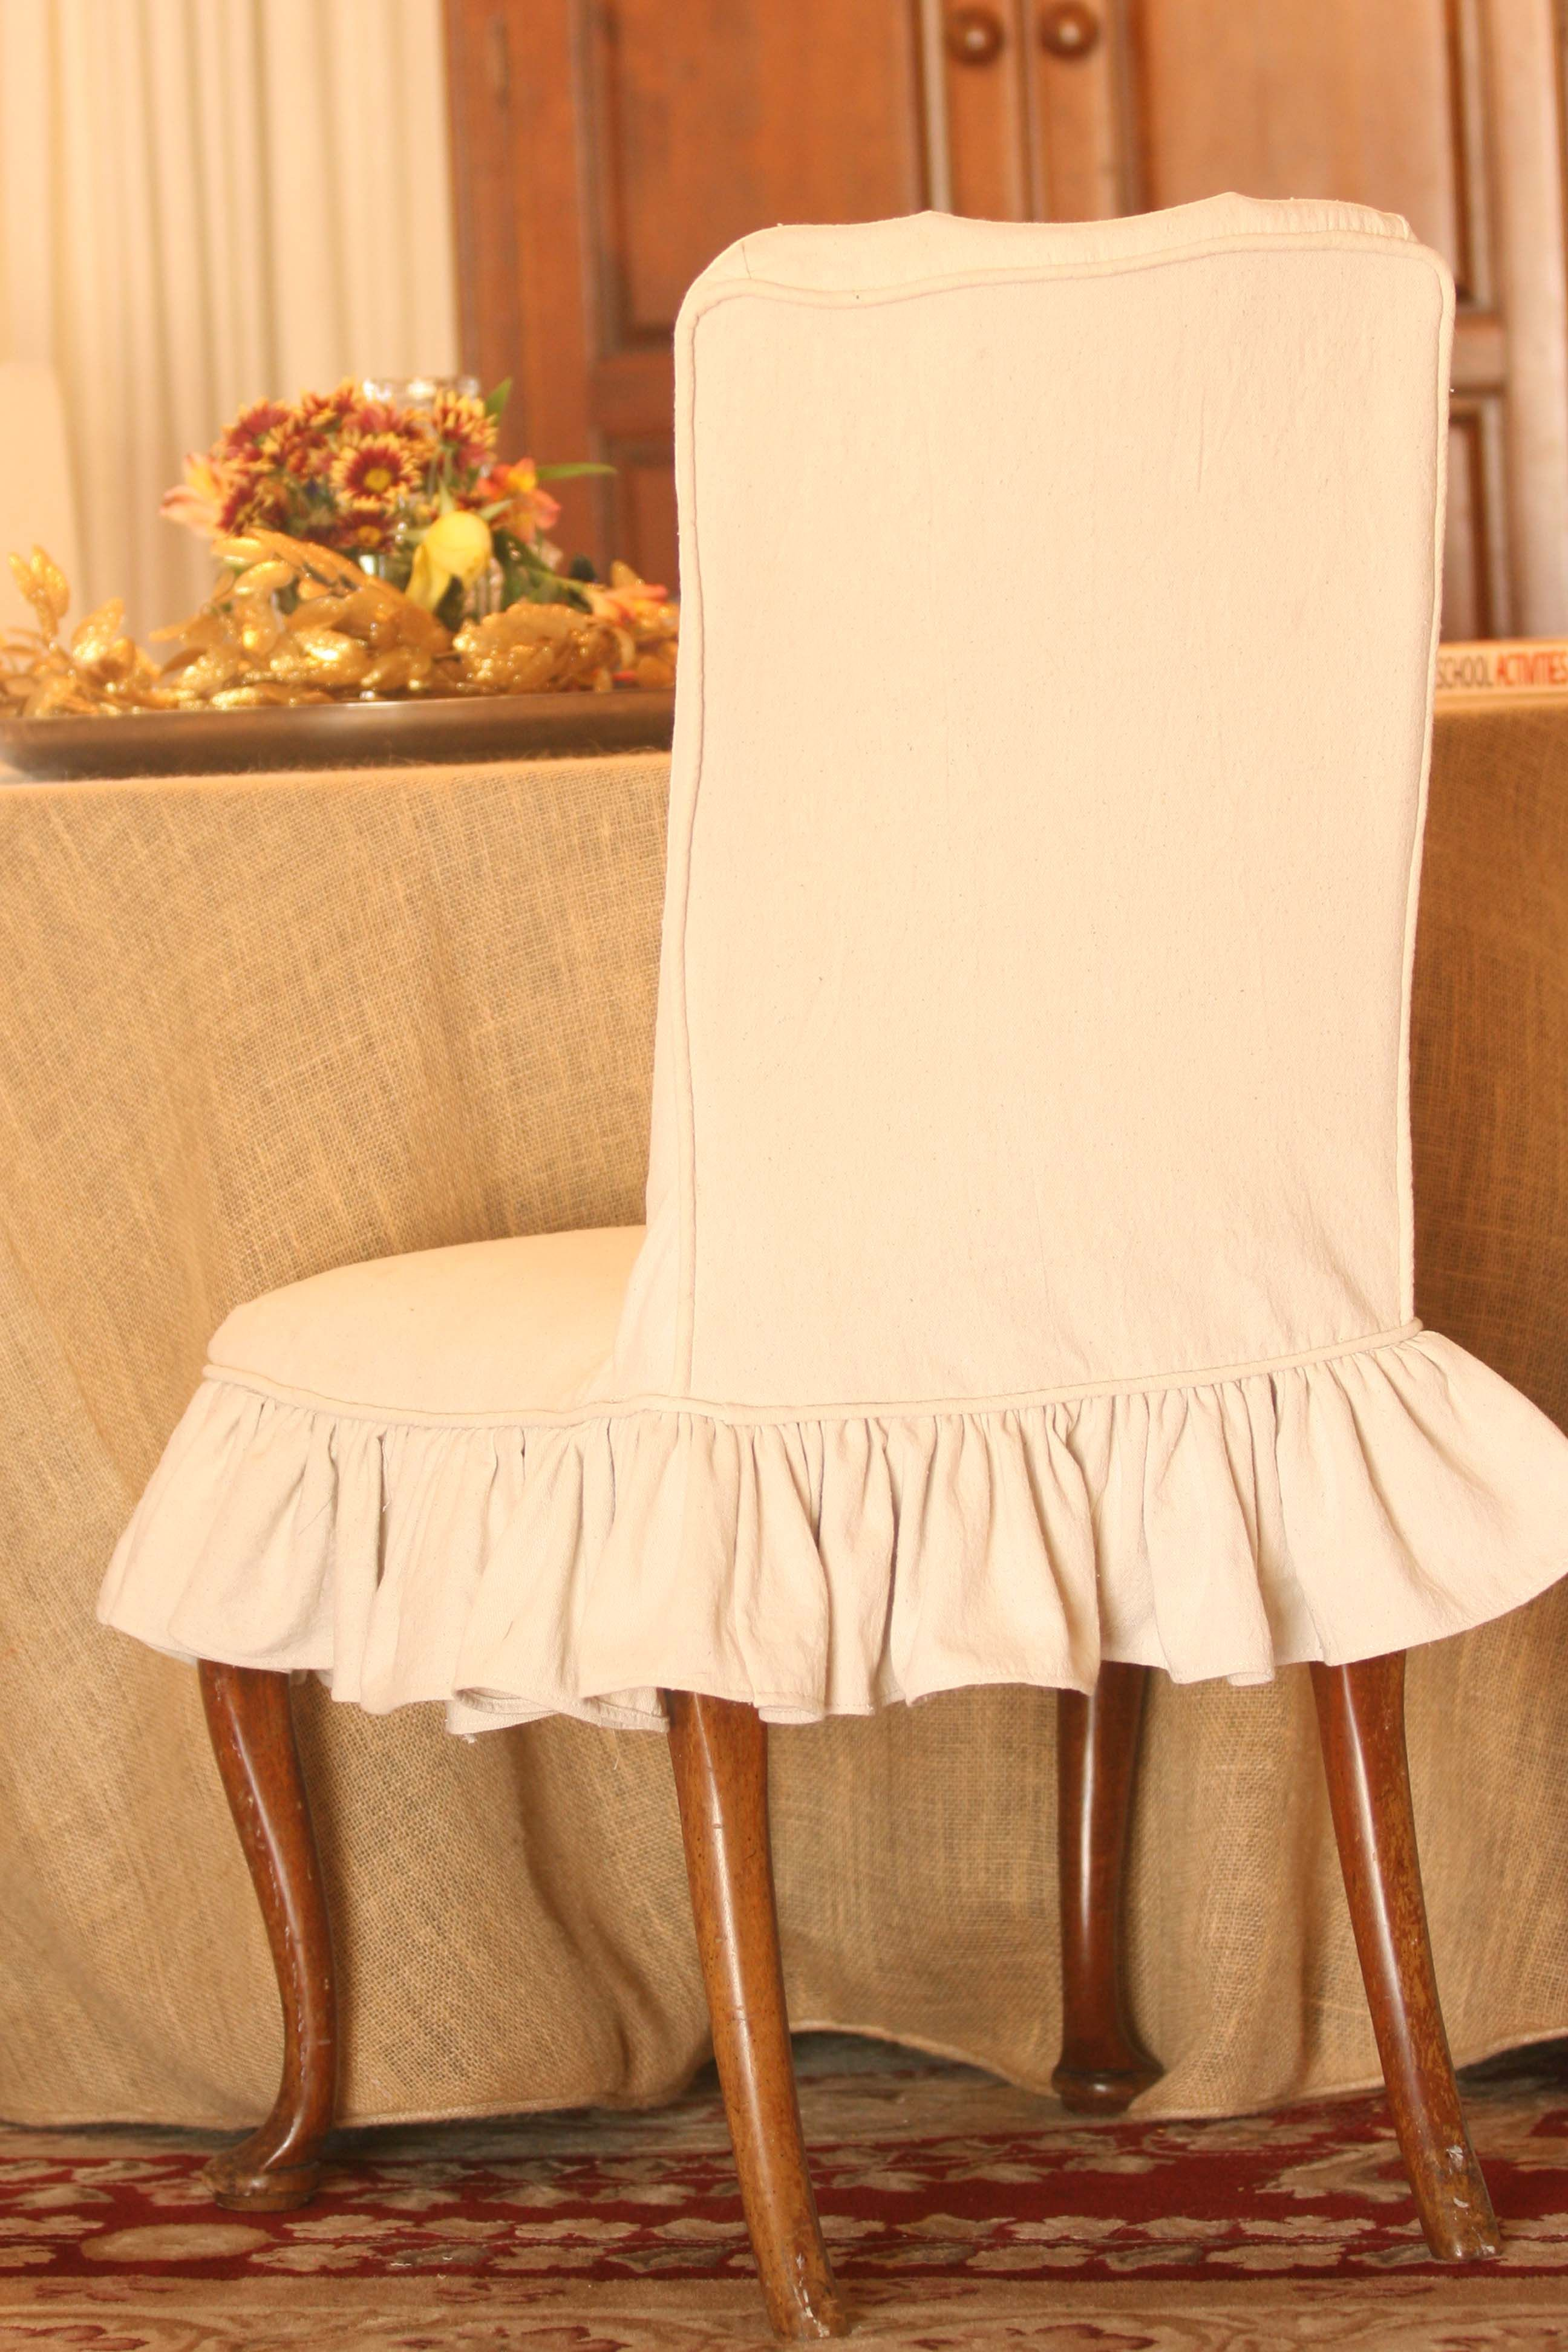 Dining chair slipcovers Linen dining chairs, Linen chair